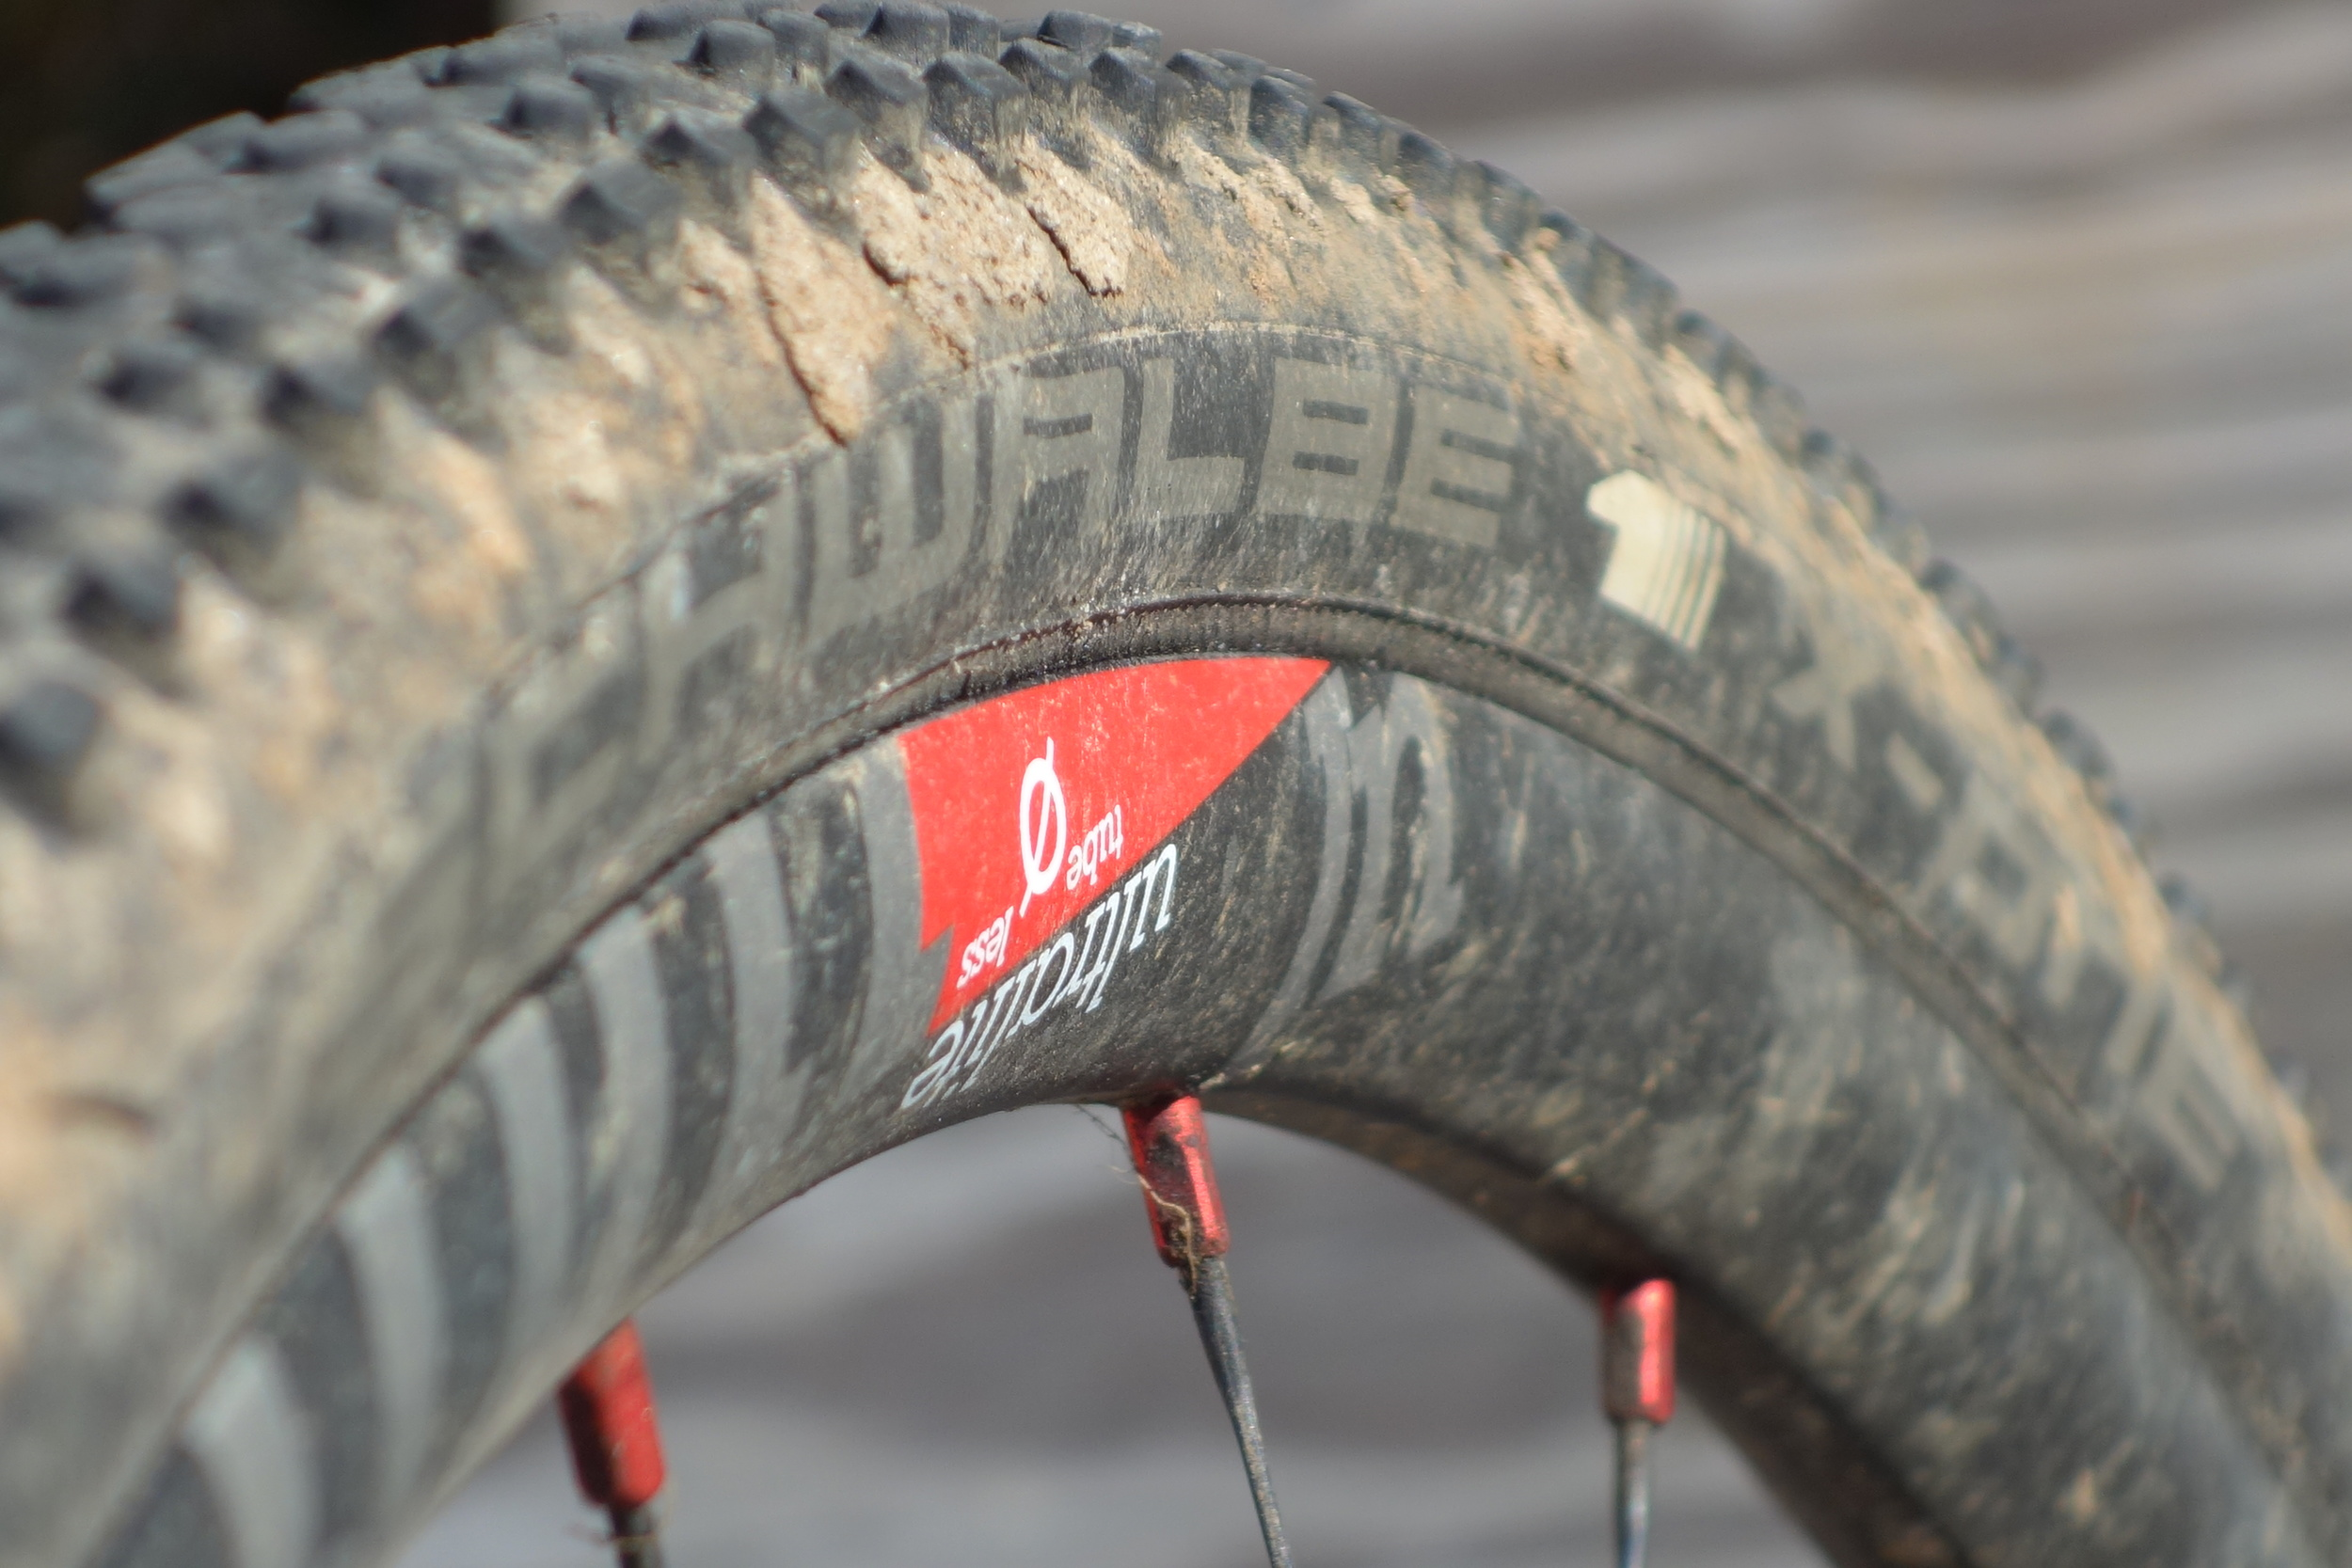 Shwalbe X-One Tubeless tires after a season of use